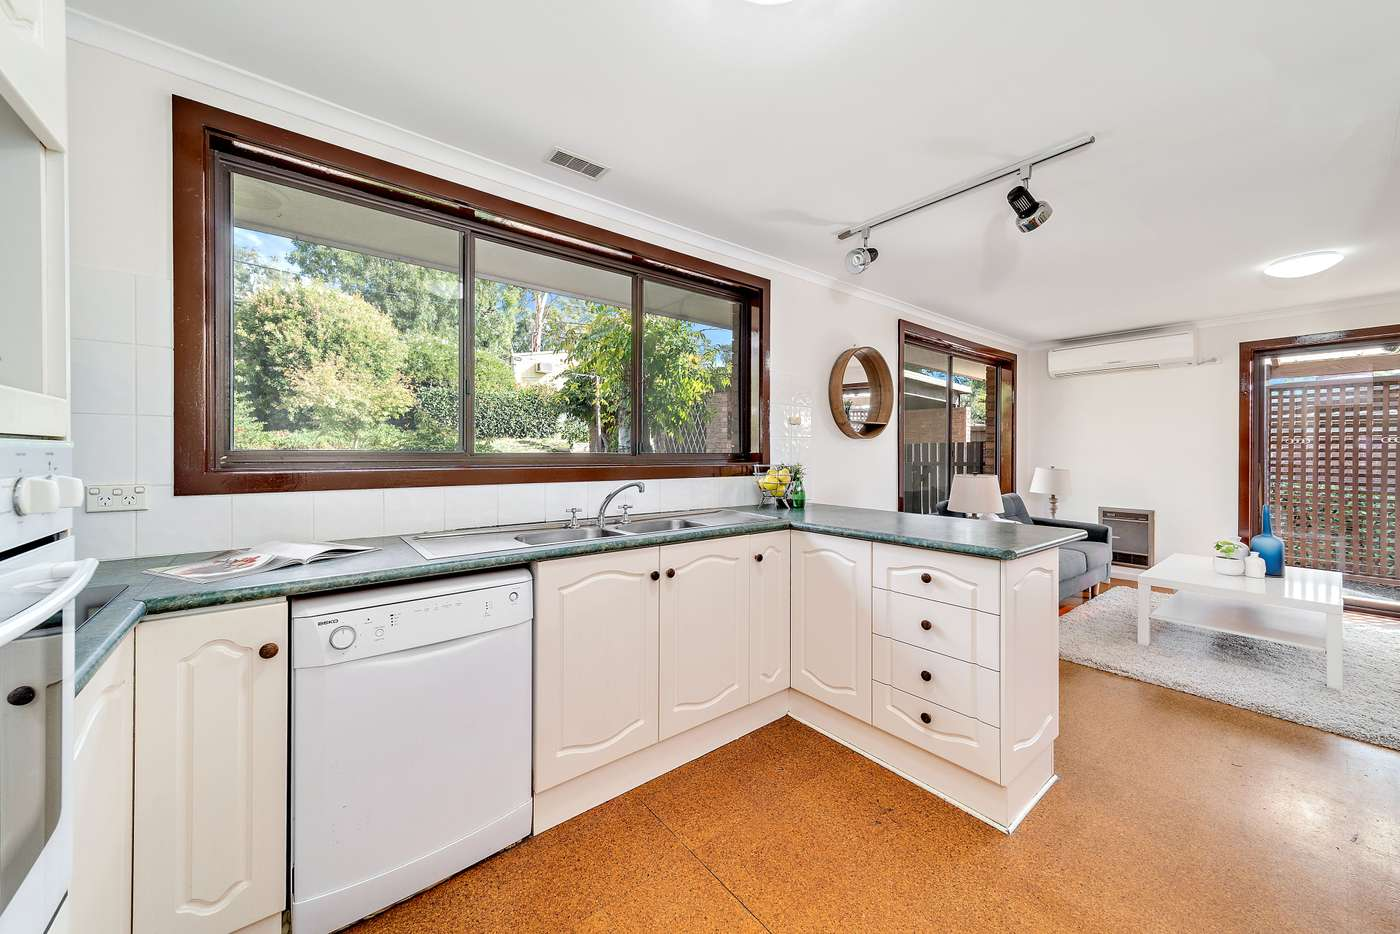 Seventh view of Homely house listing, 42 Foskett Street, Fraser ACT 2615